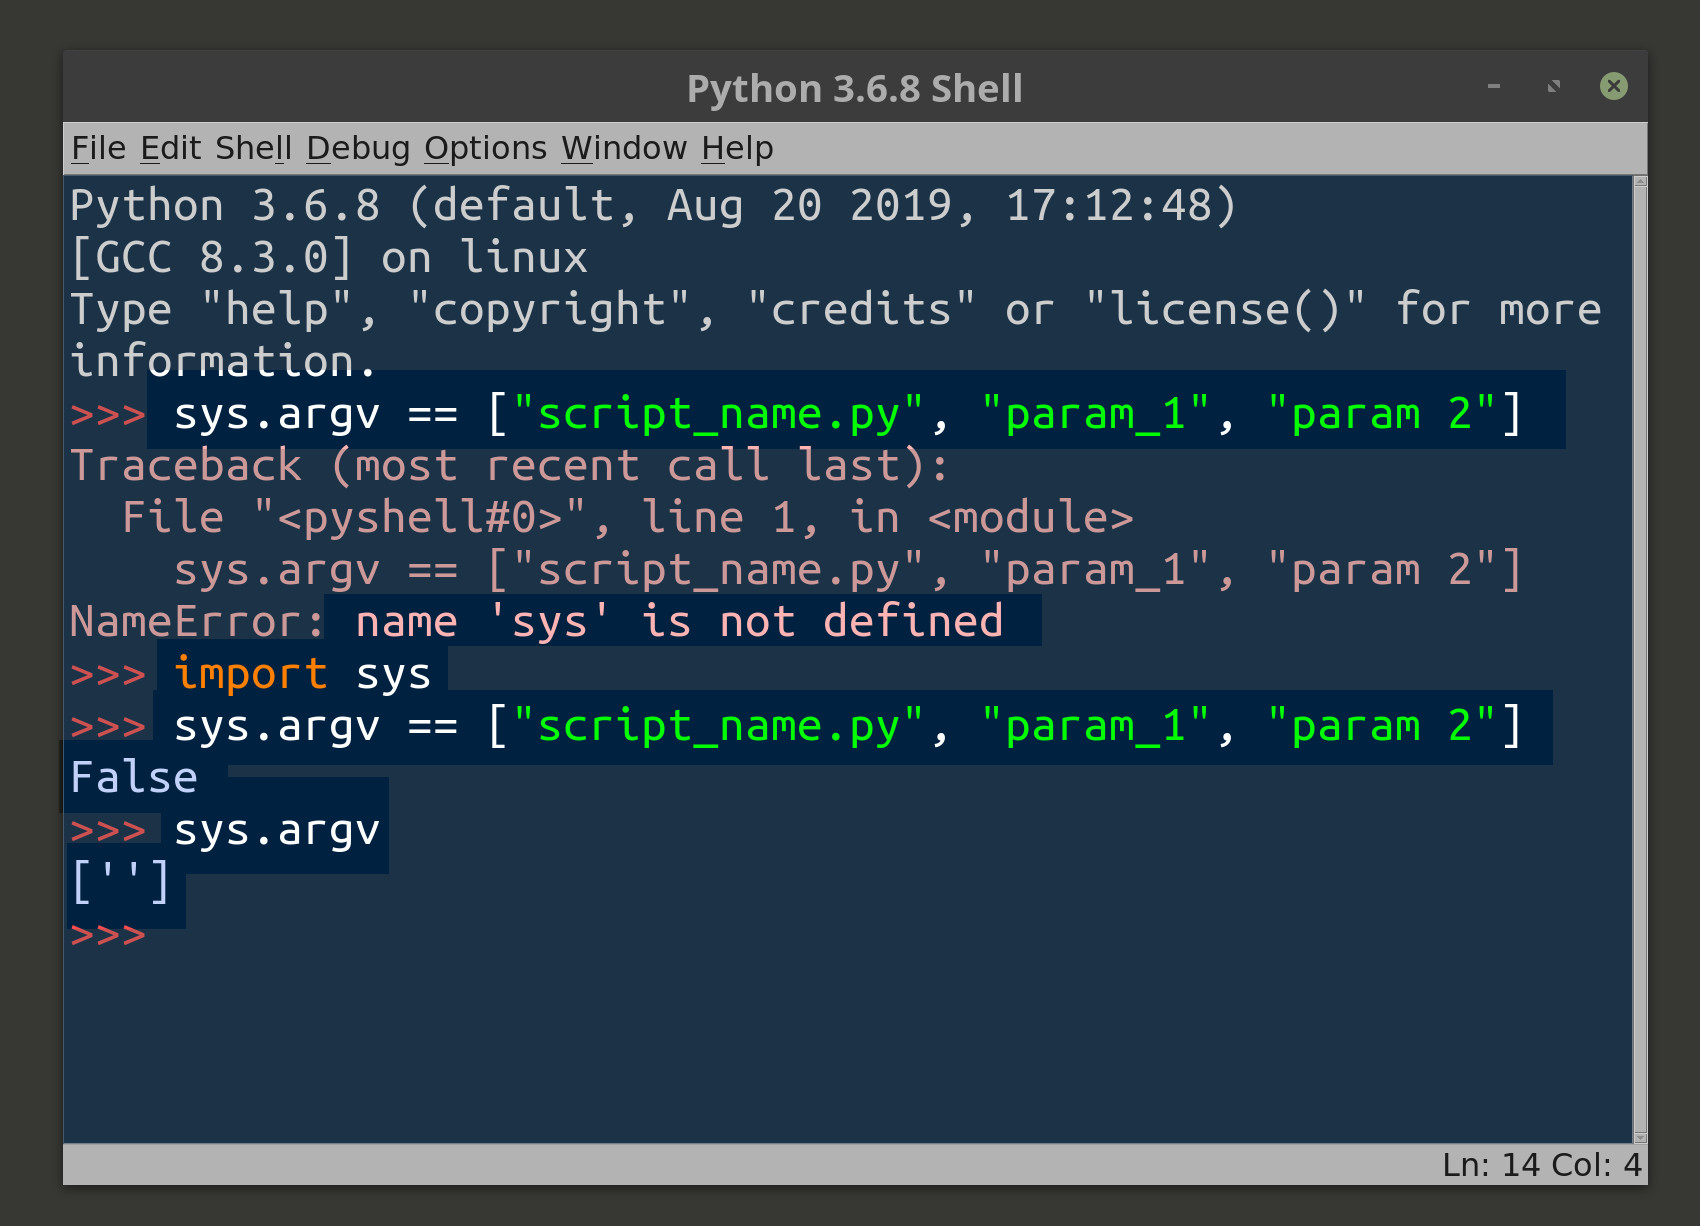 Screenshot of IDLE for Python 3 accessing the sys argv list of string arguments